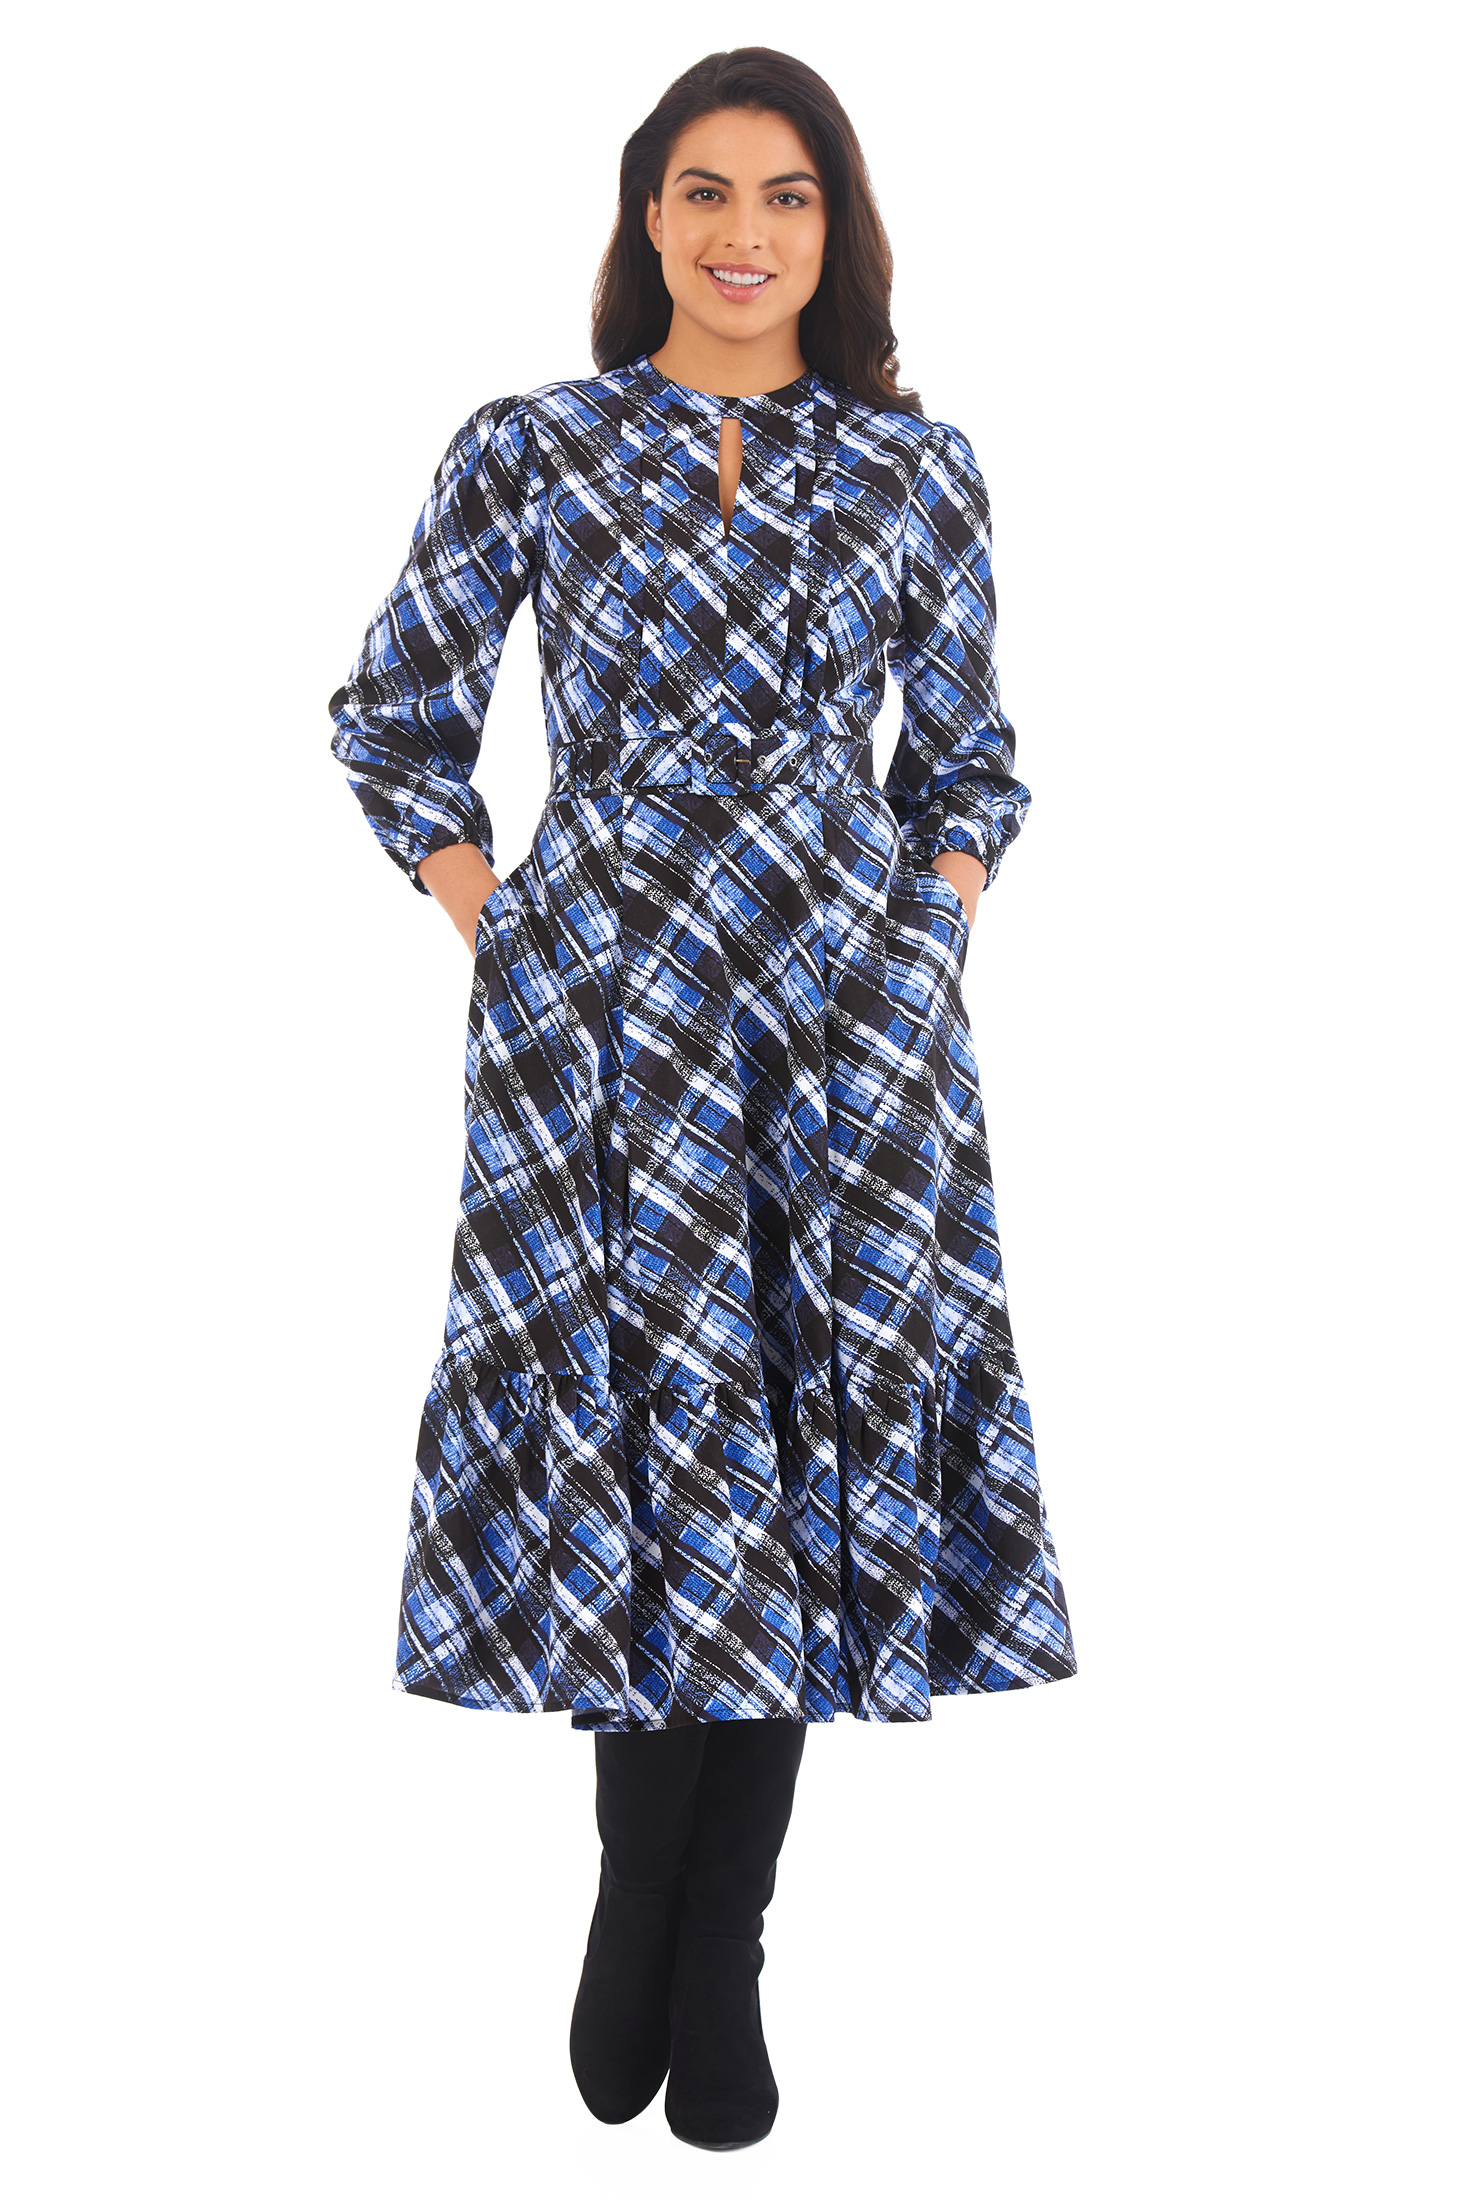 9a9846e38b7 Ladies Black And White Check Dress - Gomes Weine AG